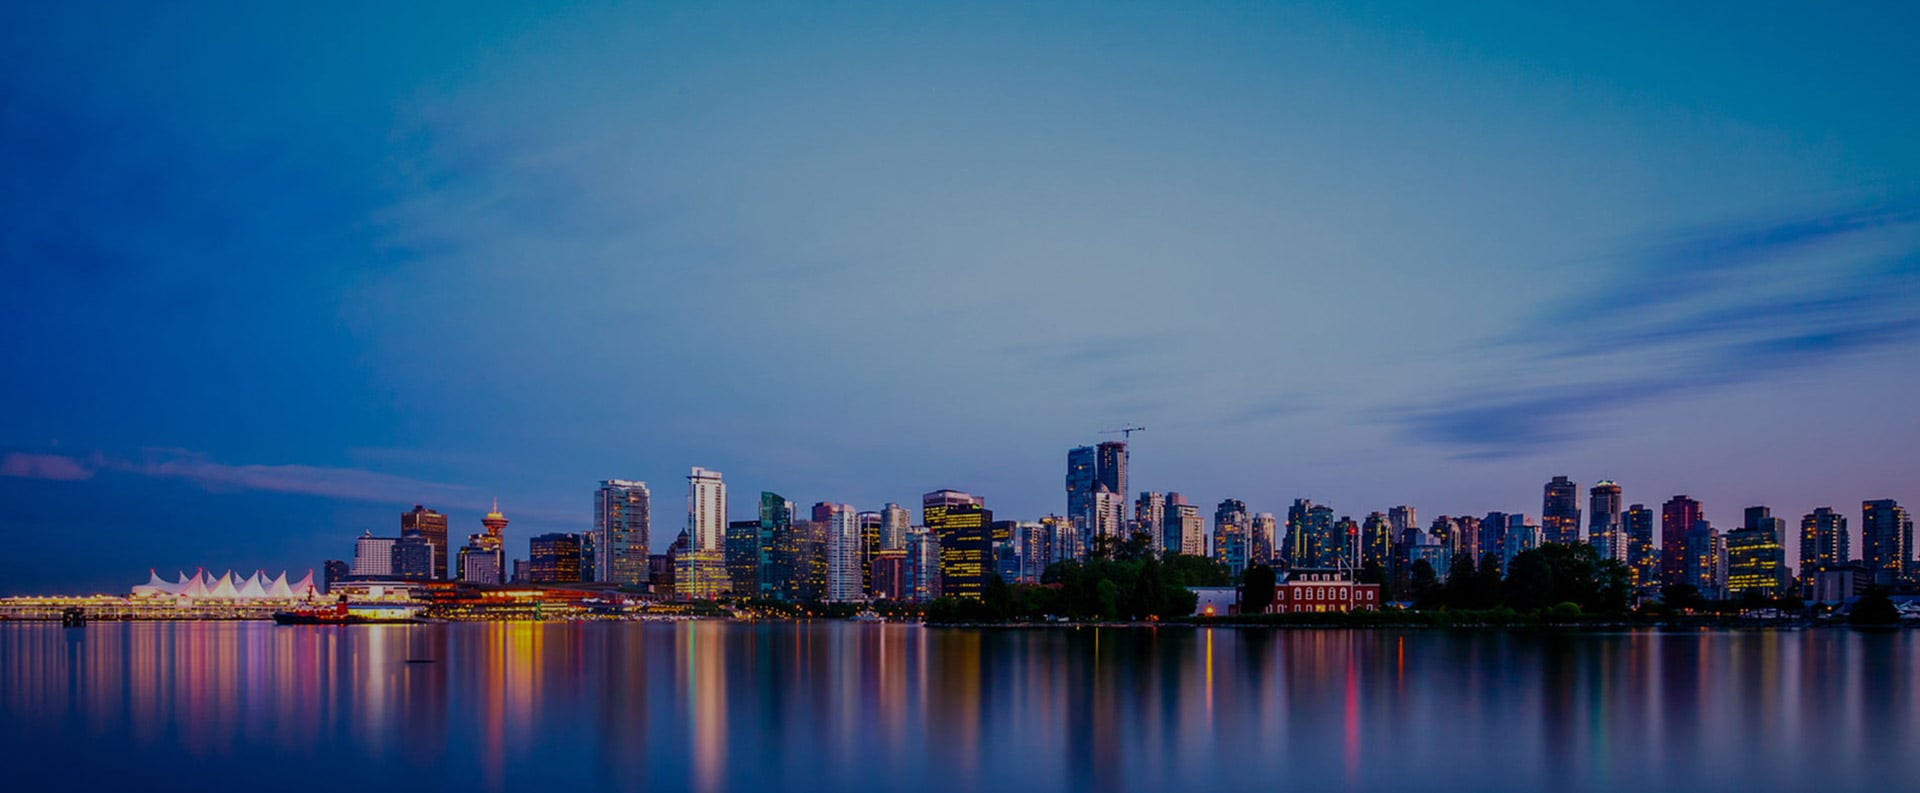 A large view of the Burrard Inlet waterfront at evening with lights from the skyline of Downtown Vancouver reflected on the waters.